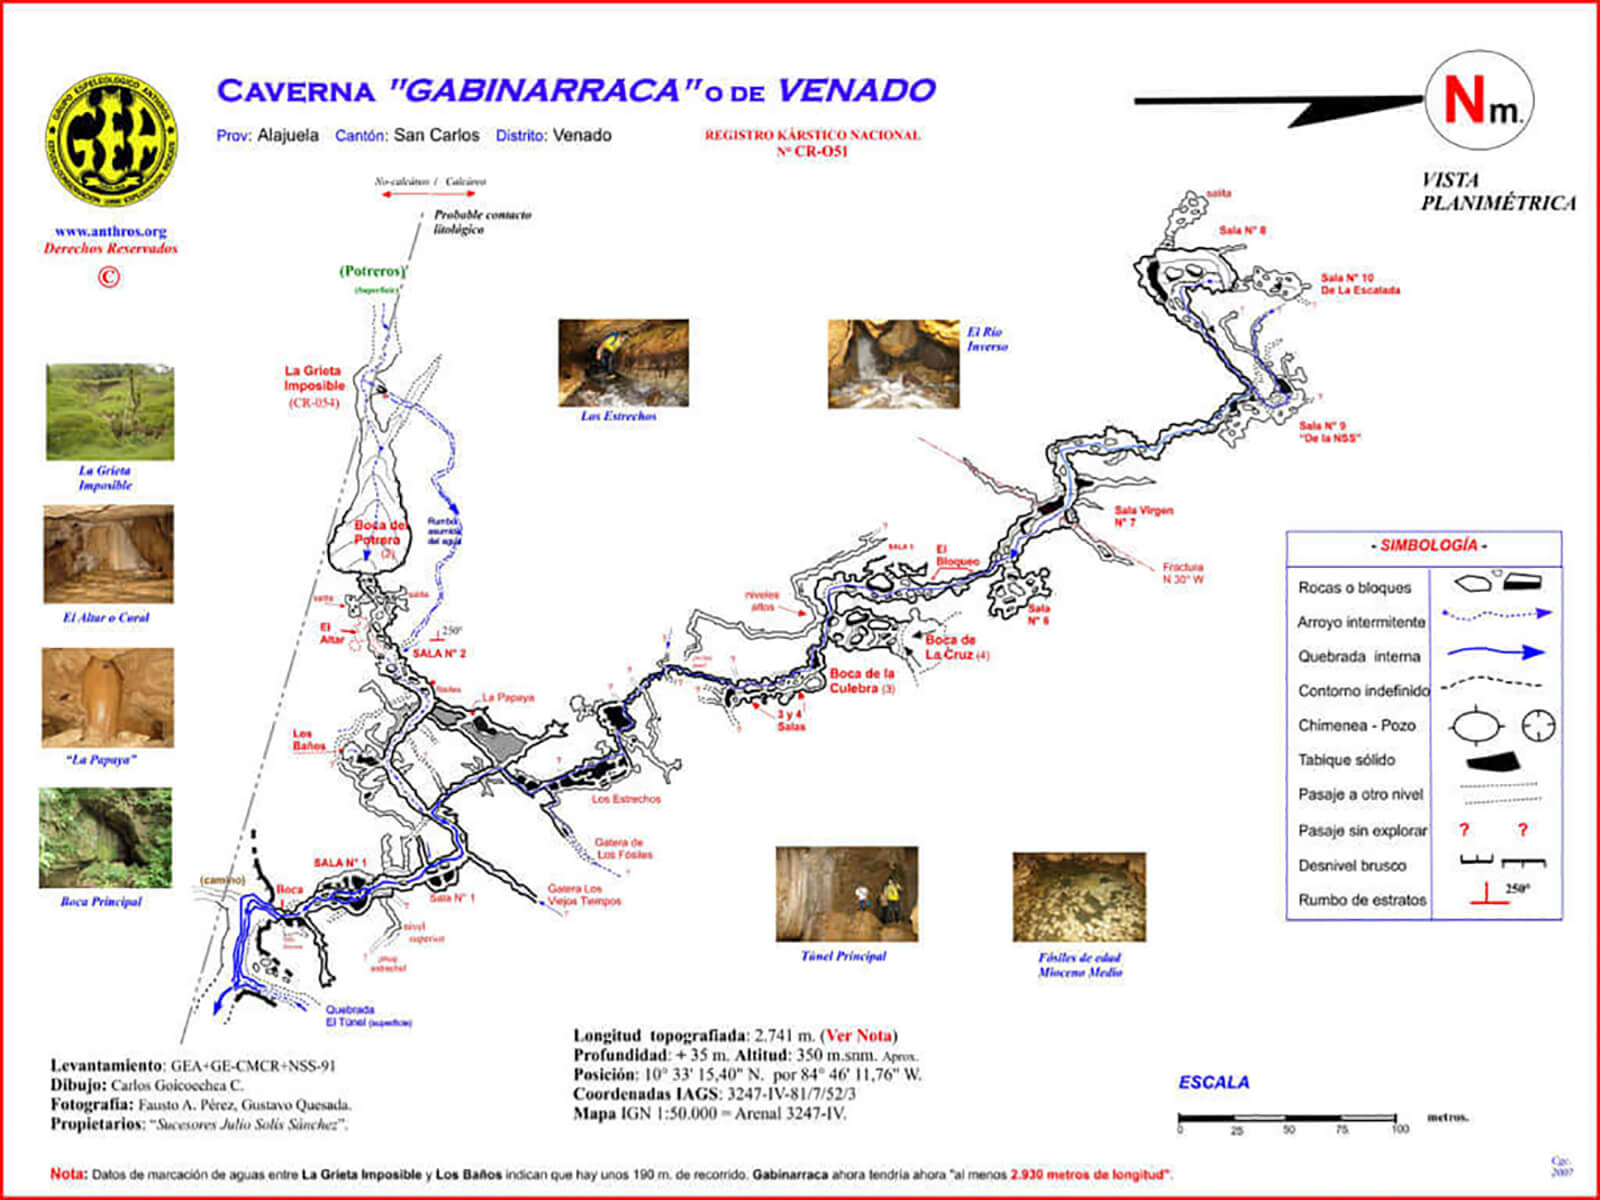 Map of the Venado Caves (Caverna Gabinarraca in Spanish) near La Fortuna and Mount Arenal in Costa Rica